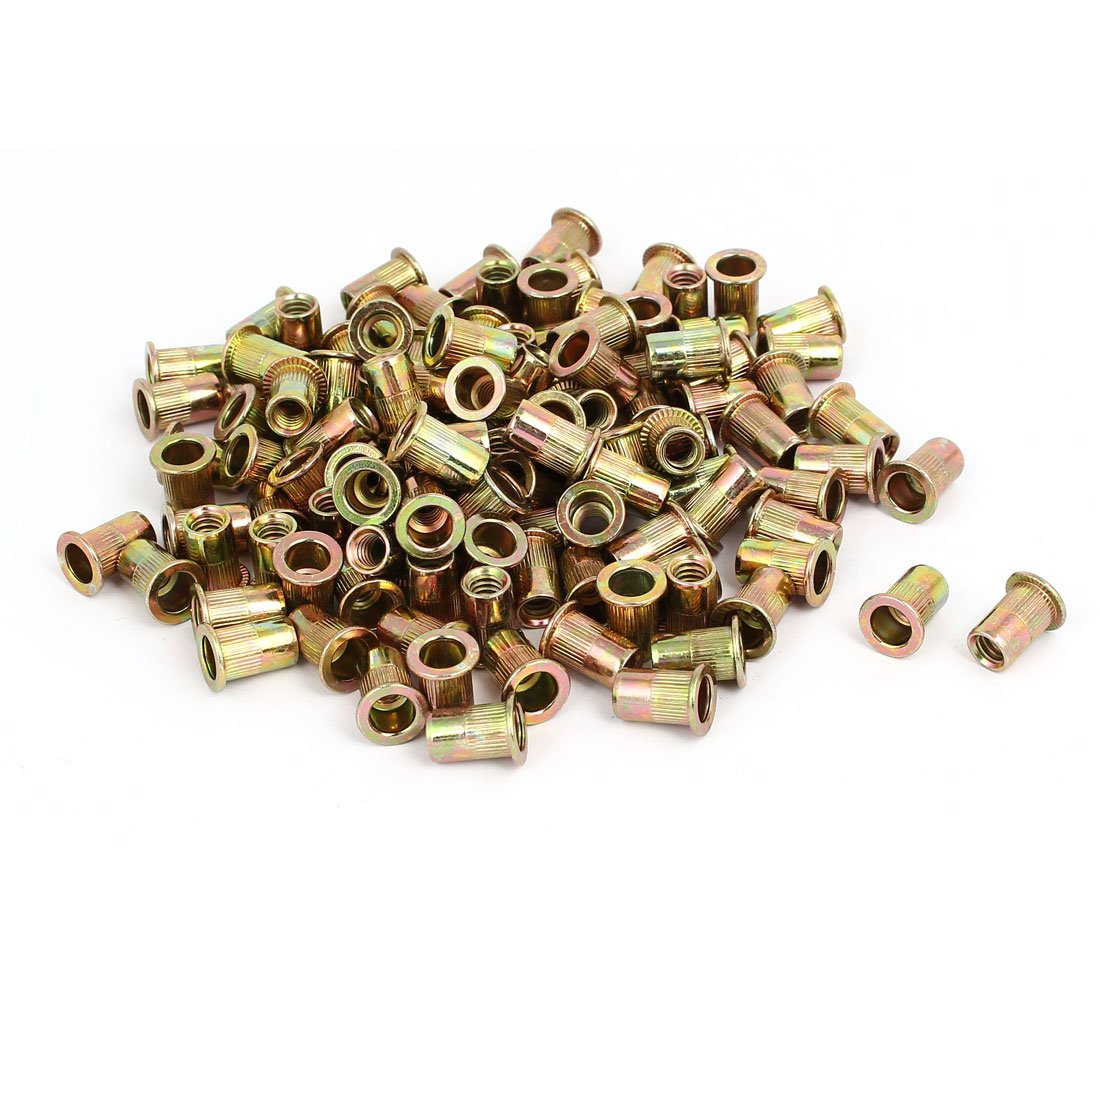 uxcell 1/4'' Female Thread Straight Knurled Rivet Nuts Insert Nutserts Bronze Tone 120pcs by uxcell